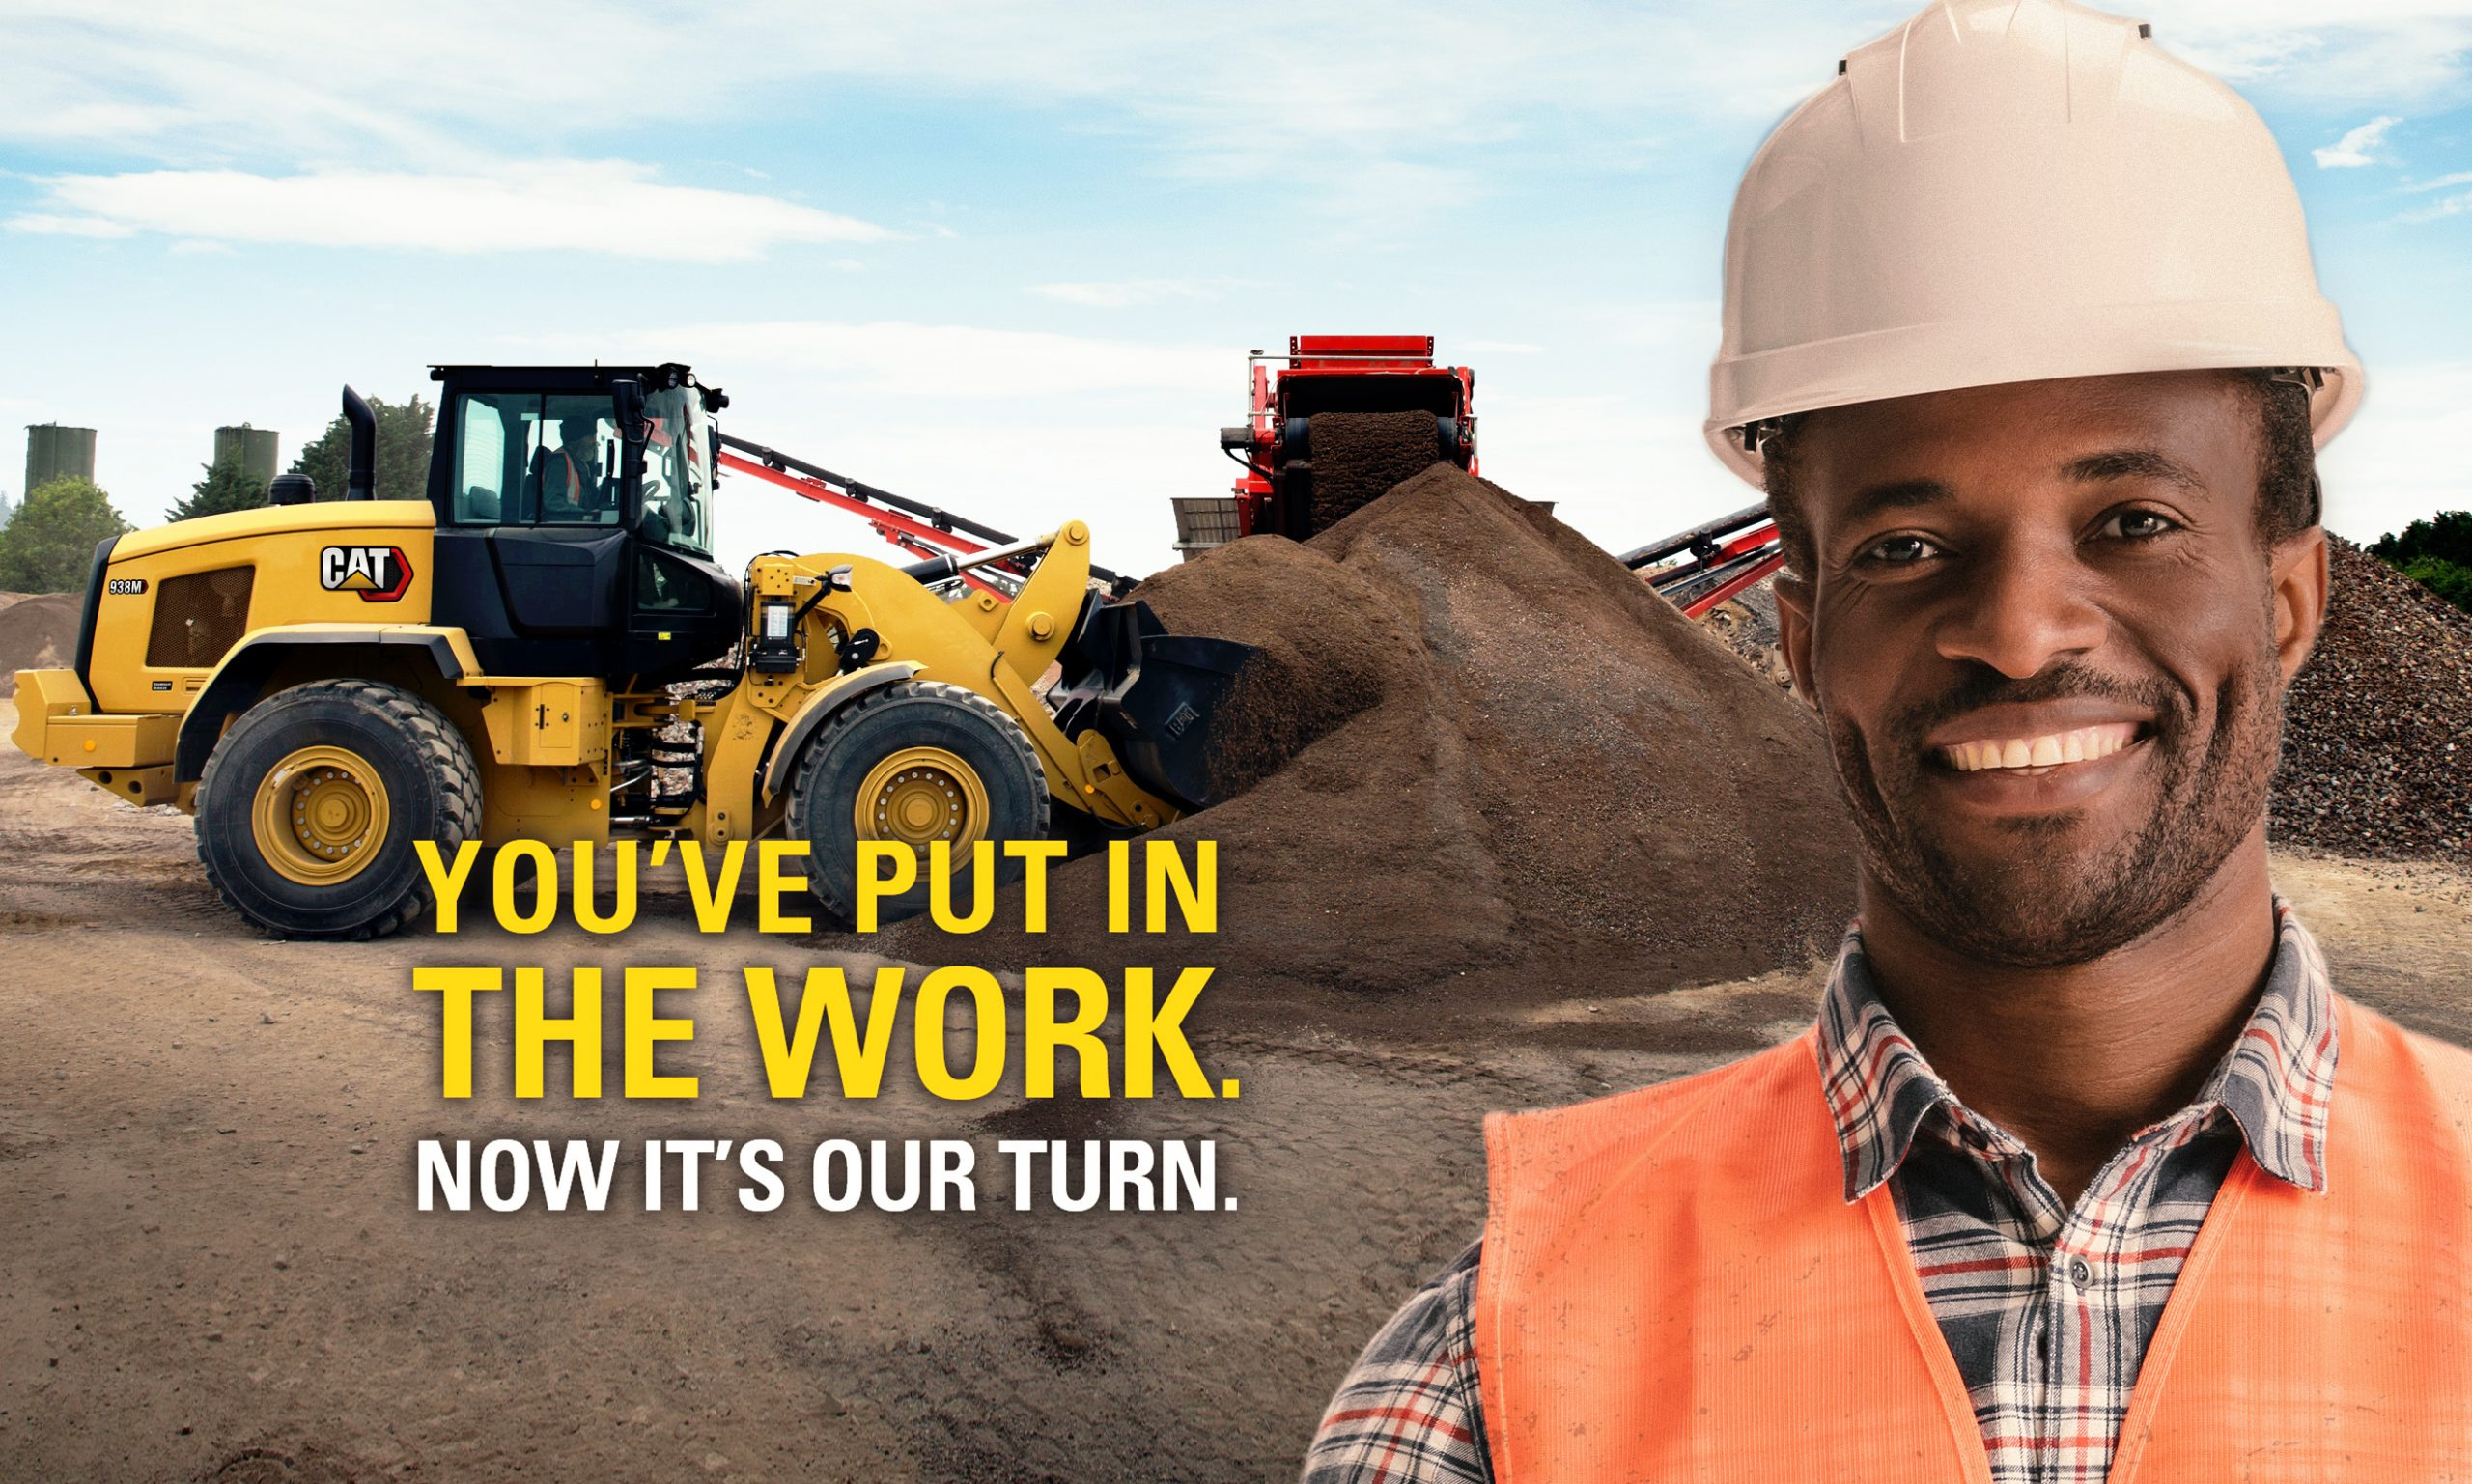 Purchase a New CAT Small Wheel Loader